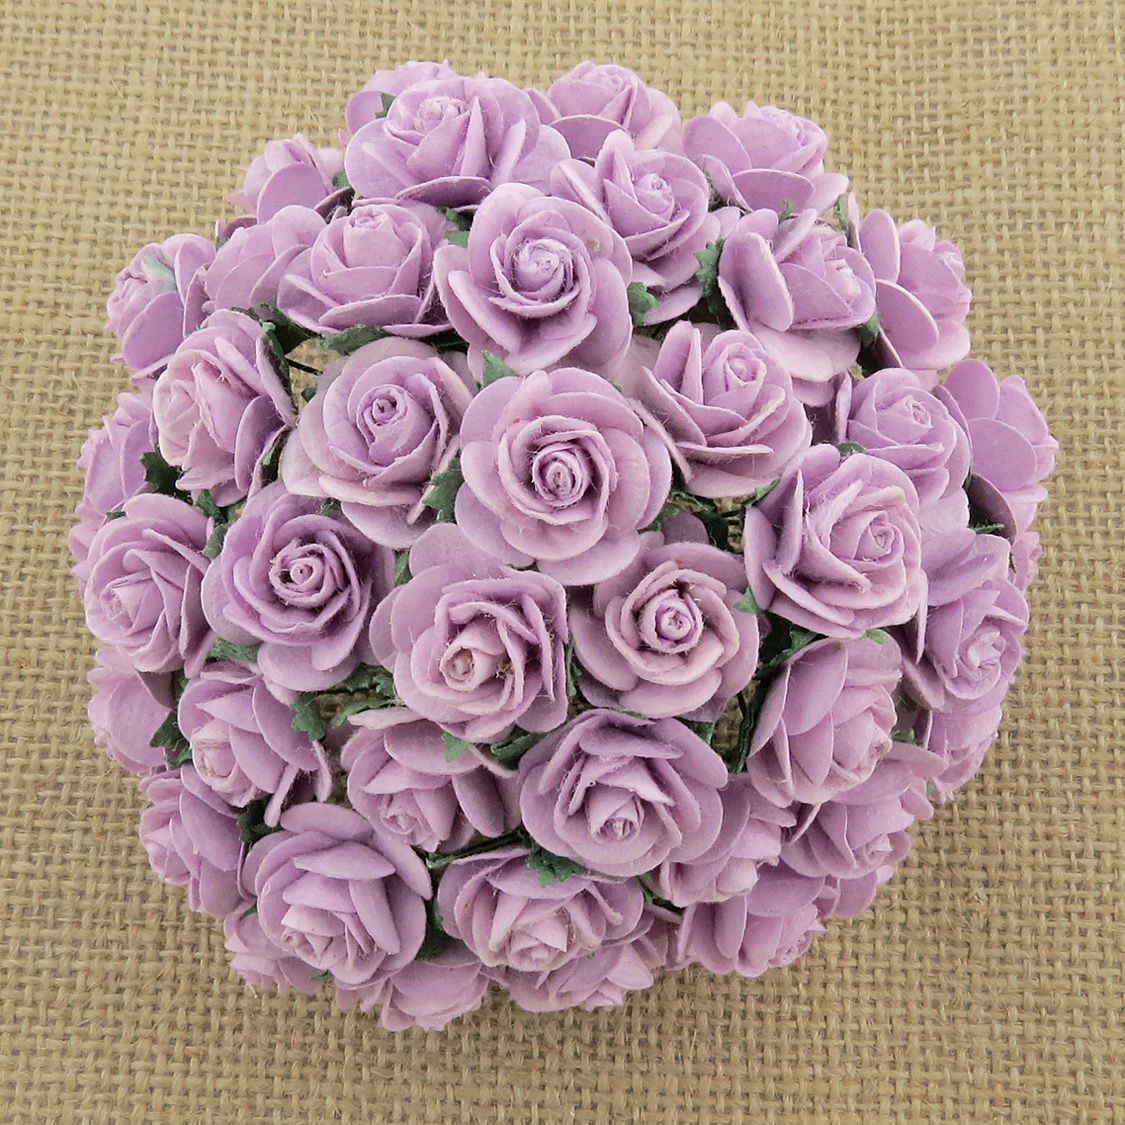 100 LILAC MULBERRY PAPER OPEN ROSES